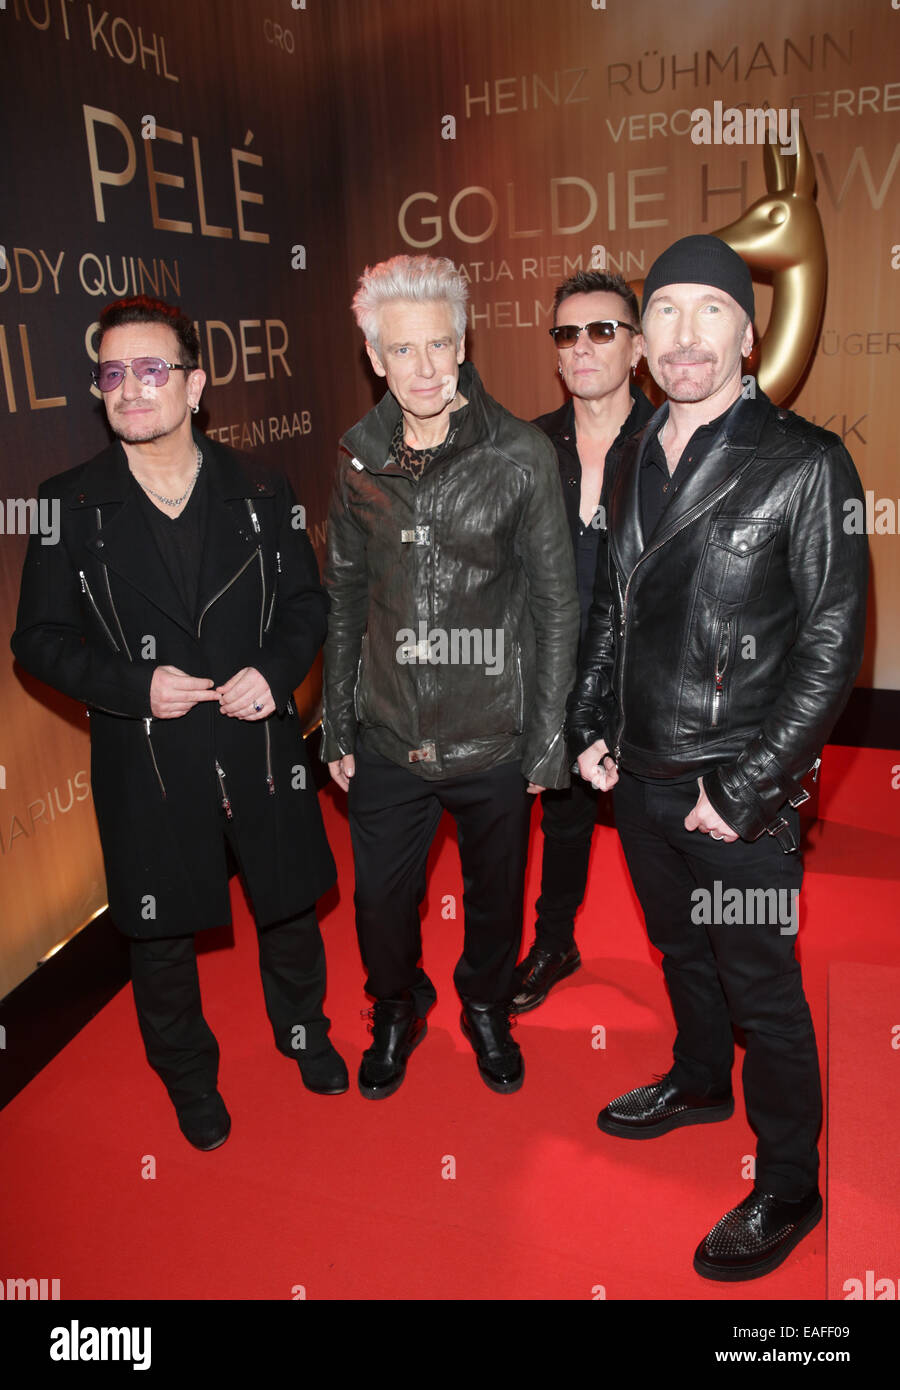 Berlin, Germany. 13th Nov, 2014. Irish band U2 with singer Bono (L) arrive on the red carpet before the Bambi Awards - Stock Image